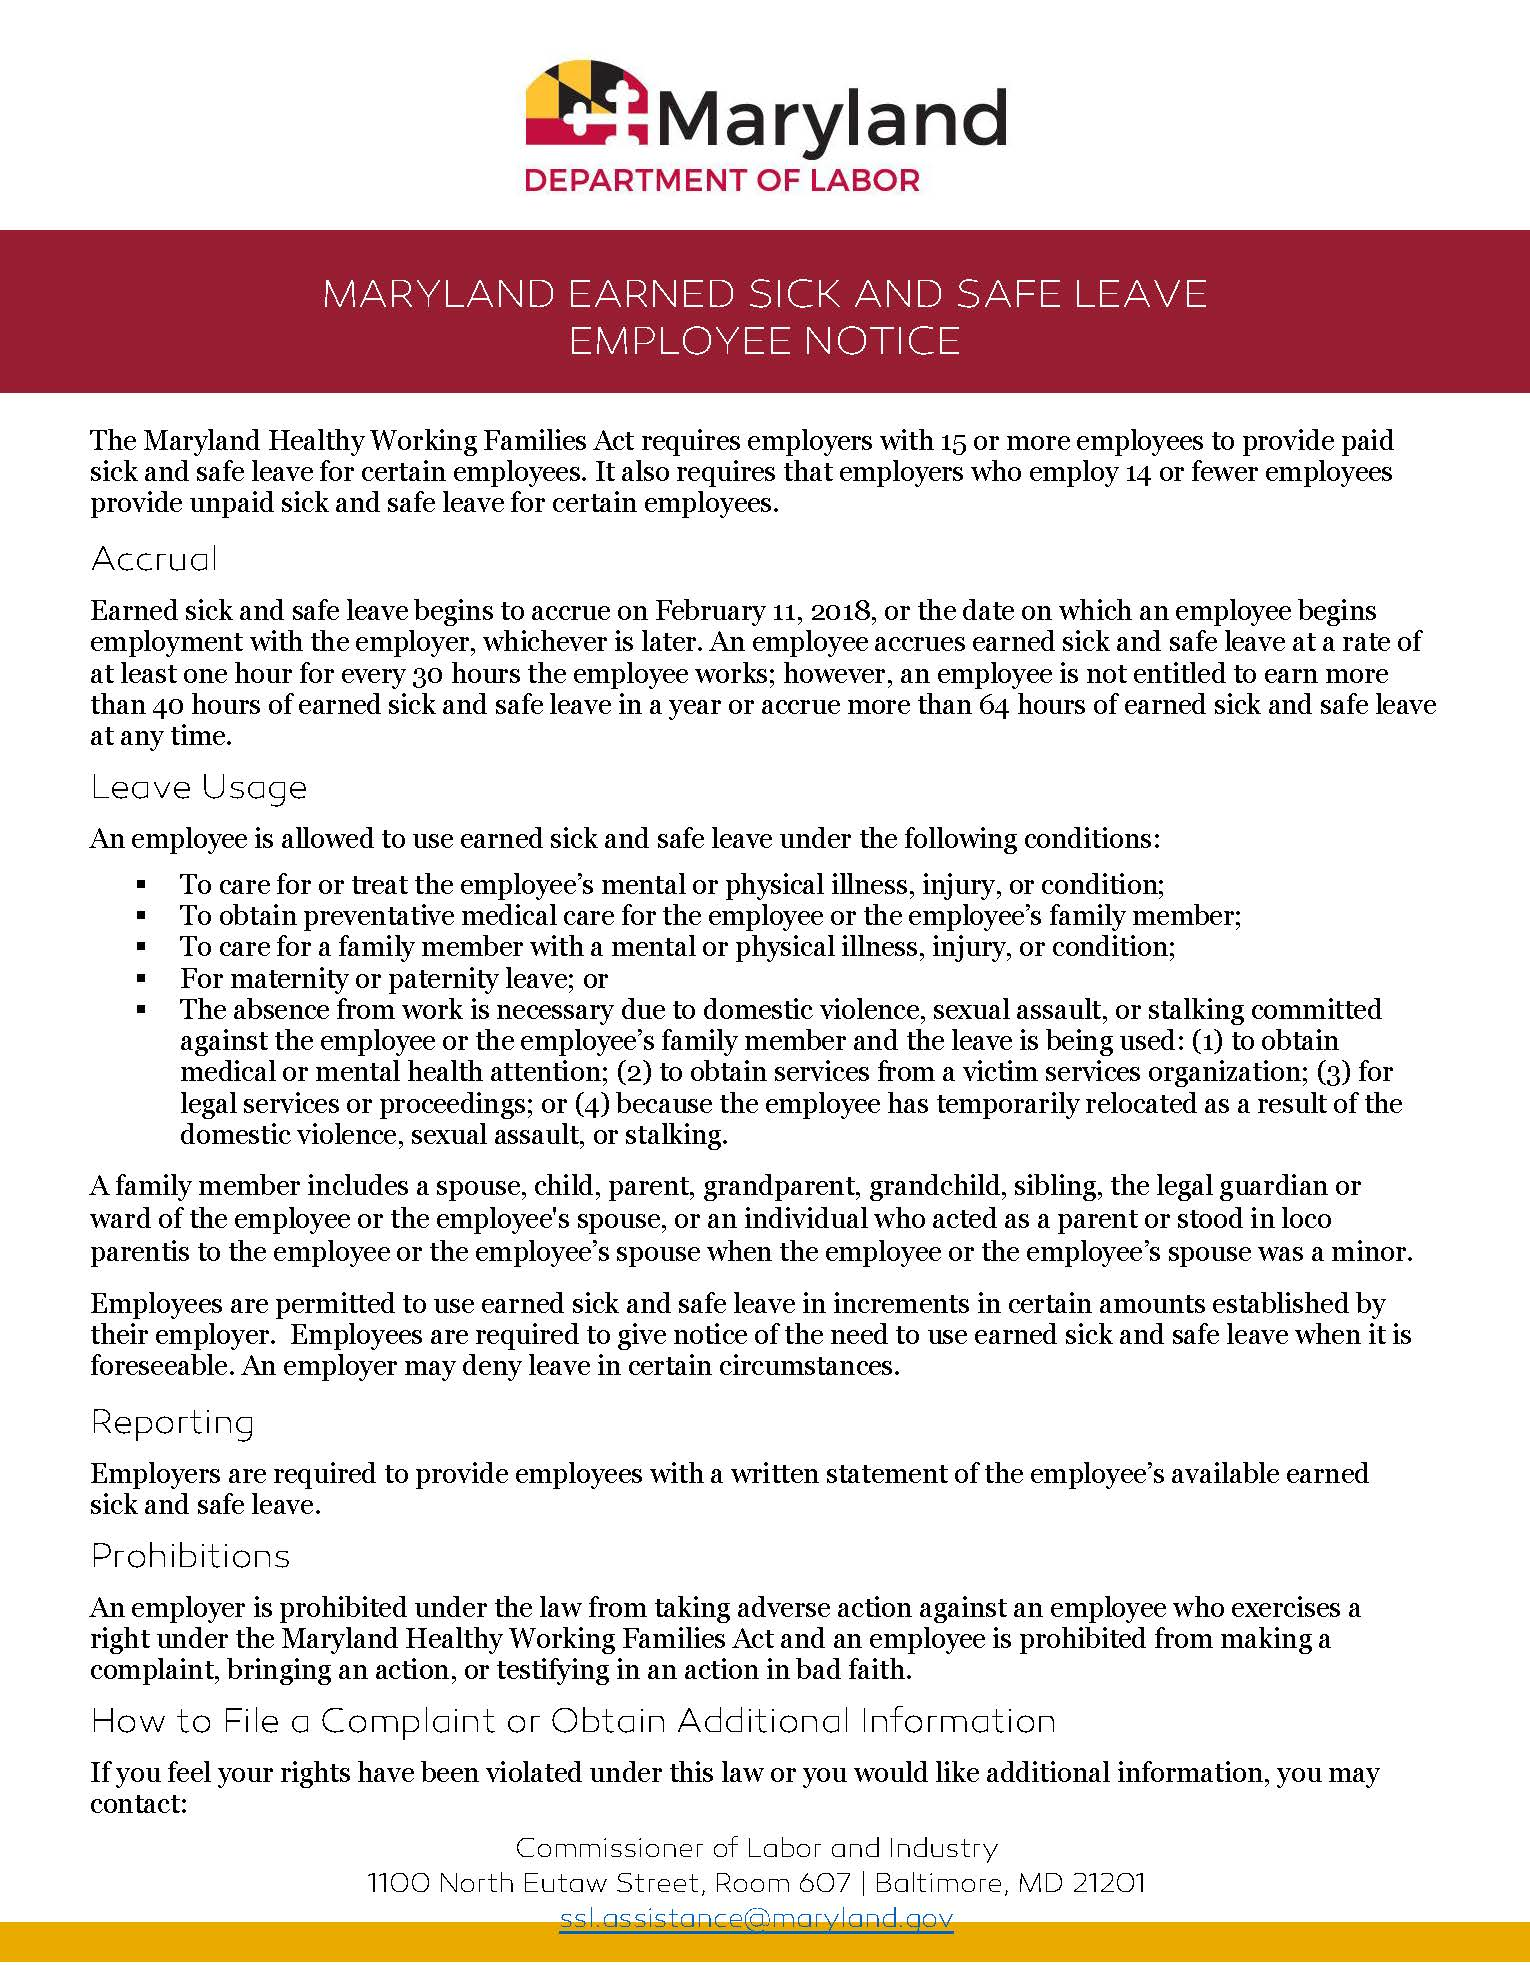 Maryland Earned Sick and Safe Leave Notice